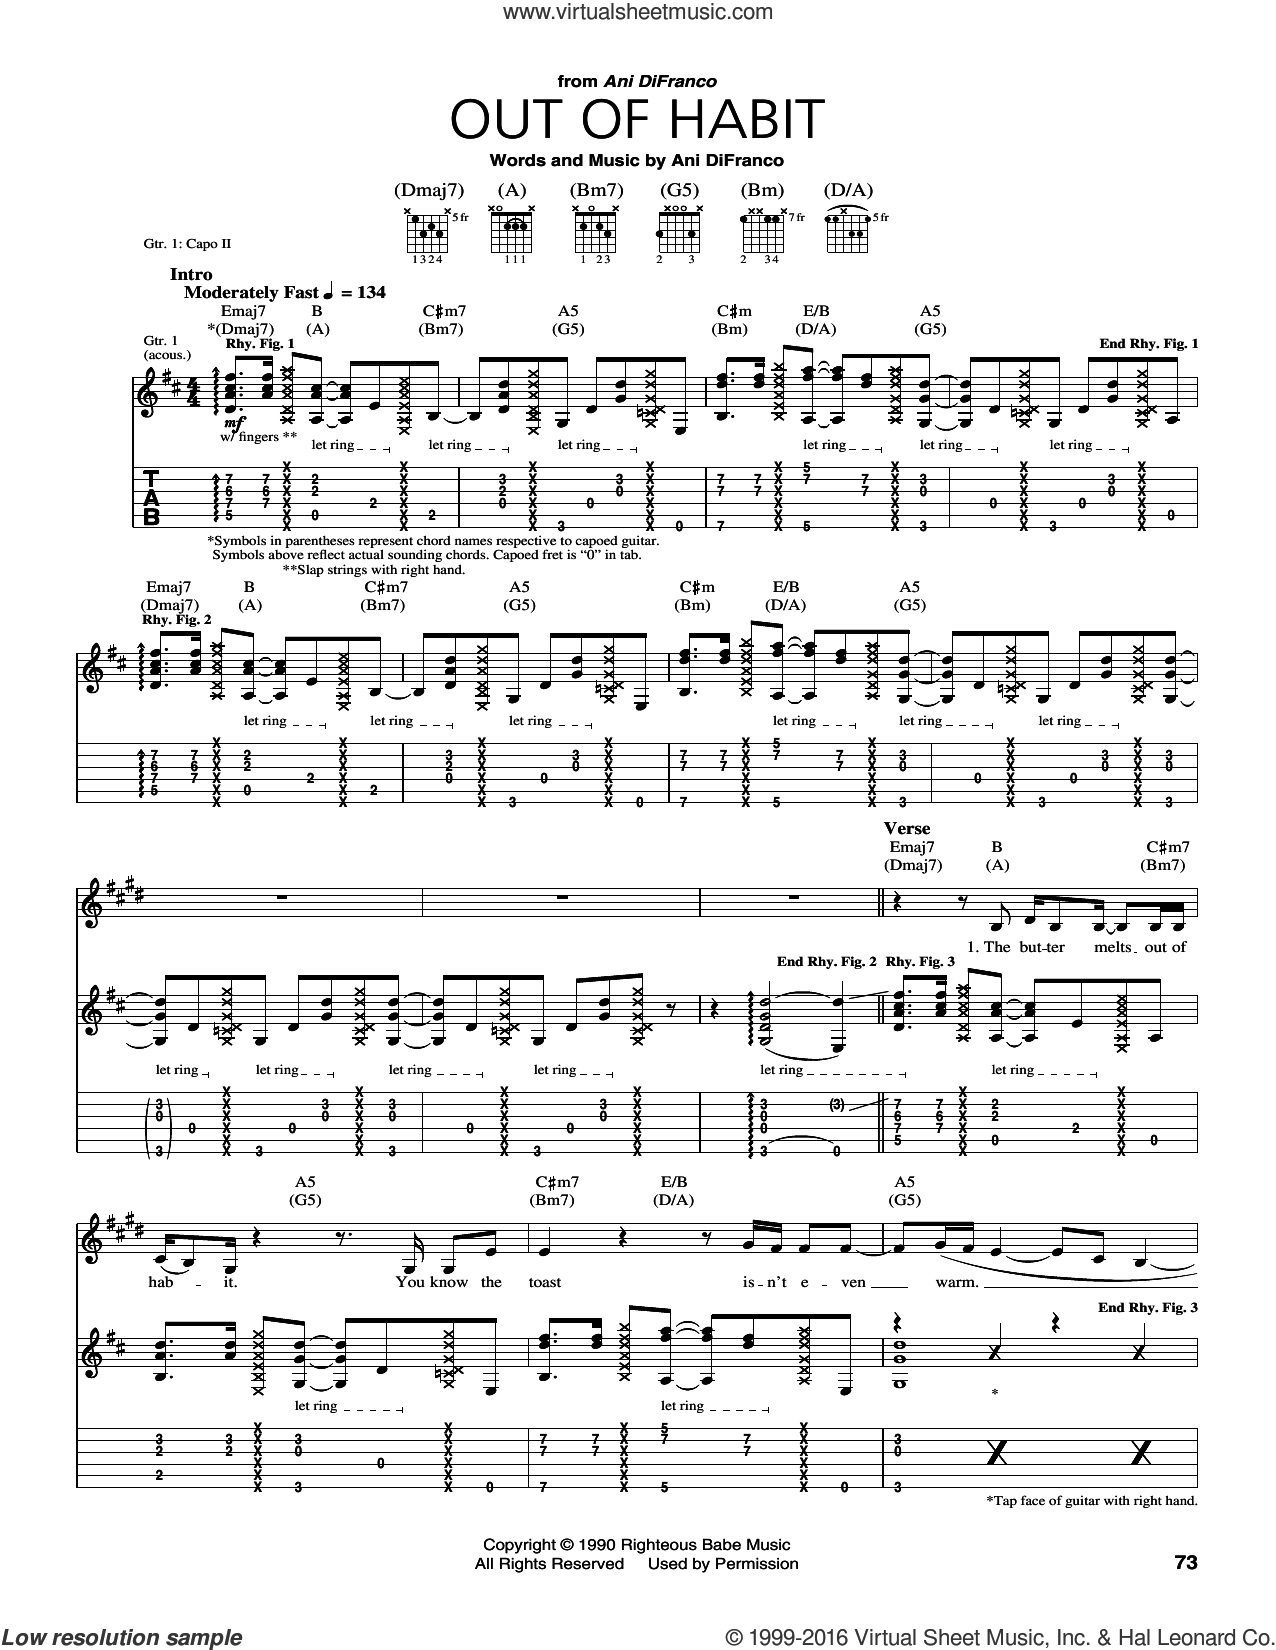 Out Of Habit sheet music for guitar (tablature) by Ani DiFranco